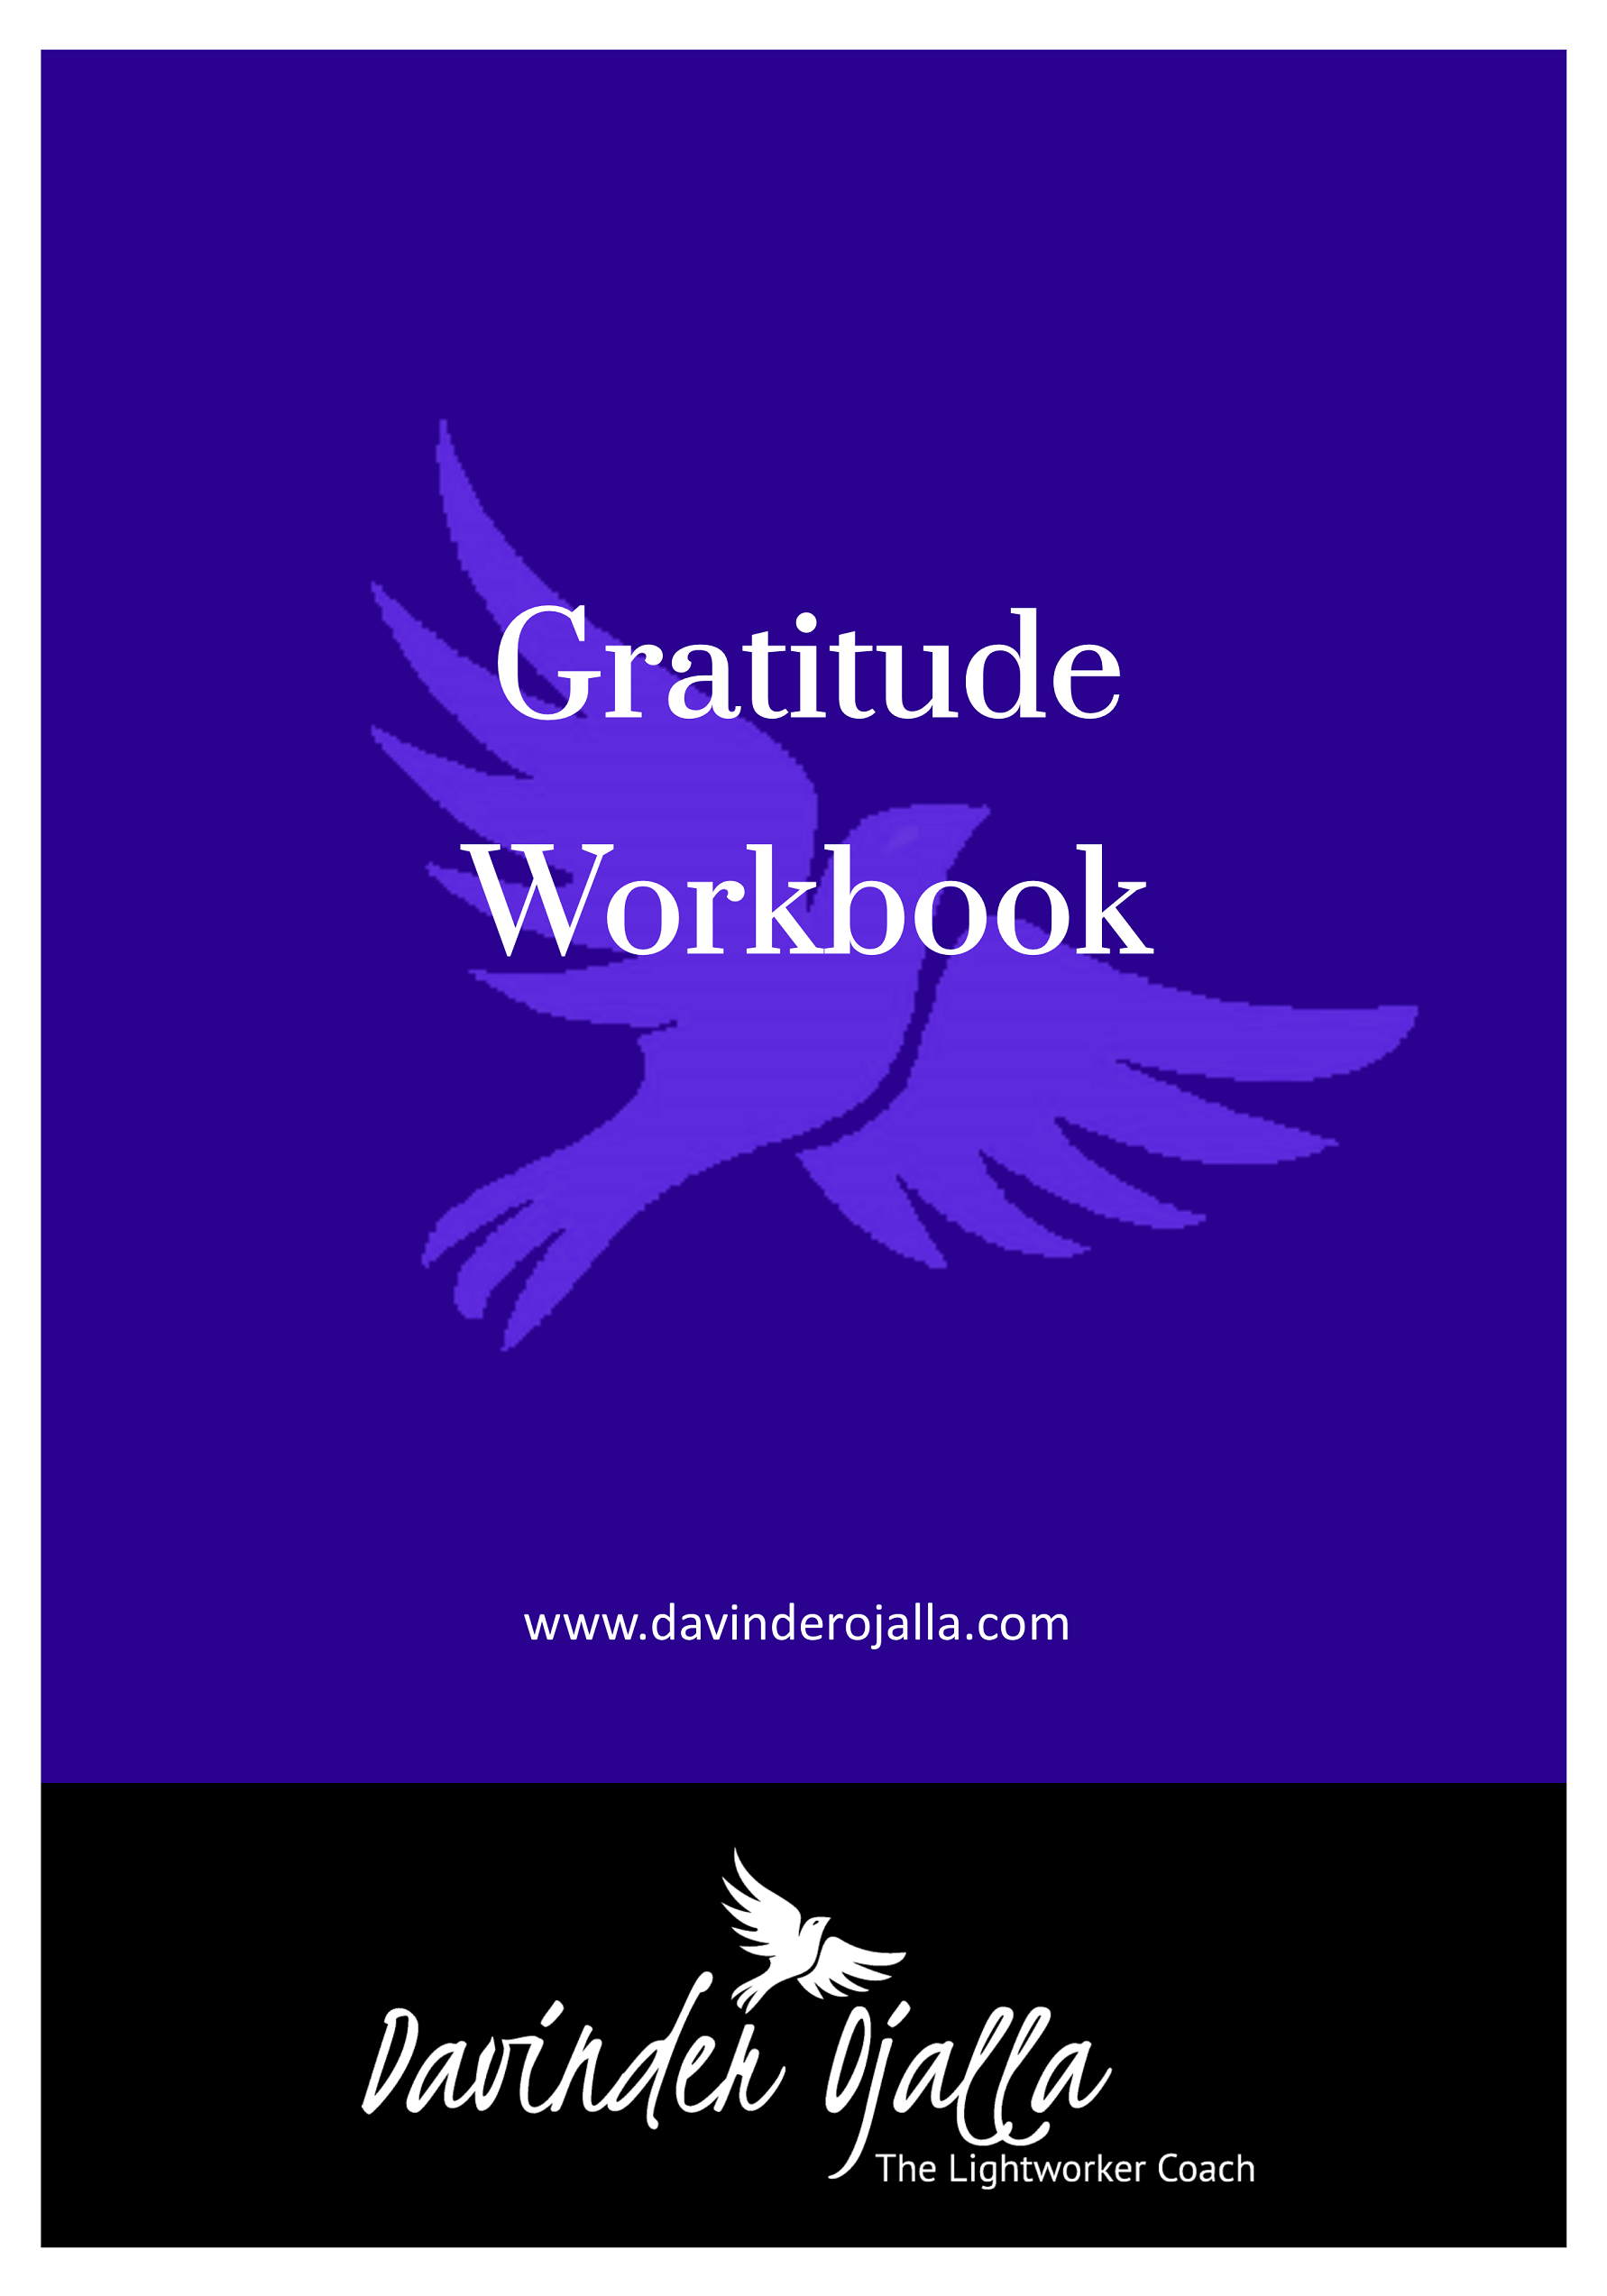 Gratitude Workbook MED